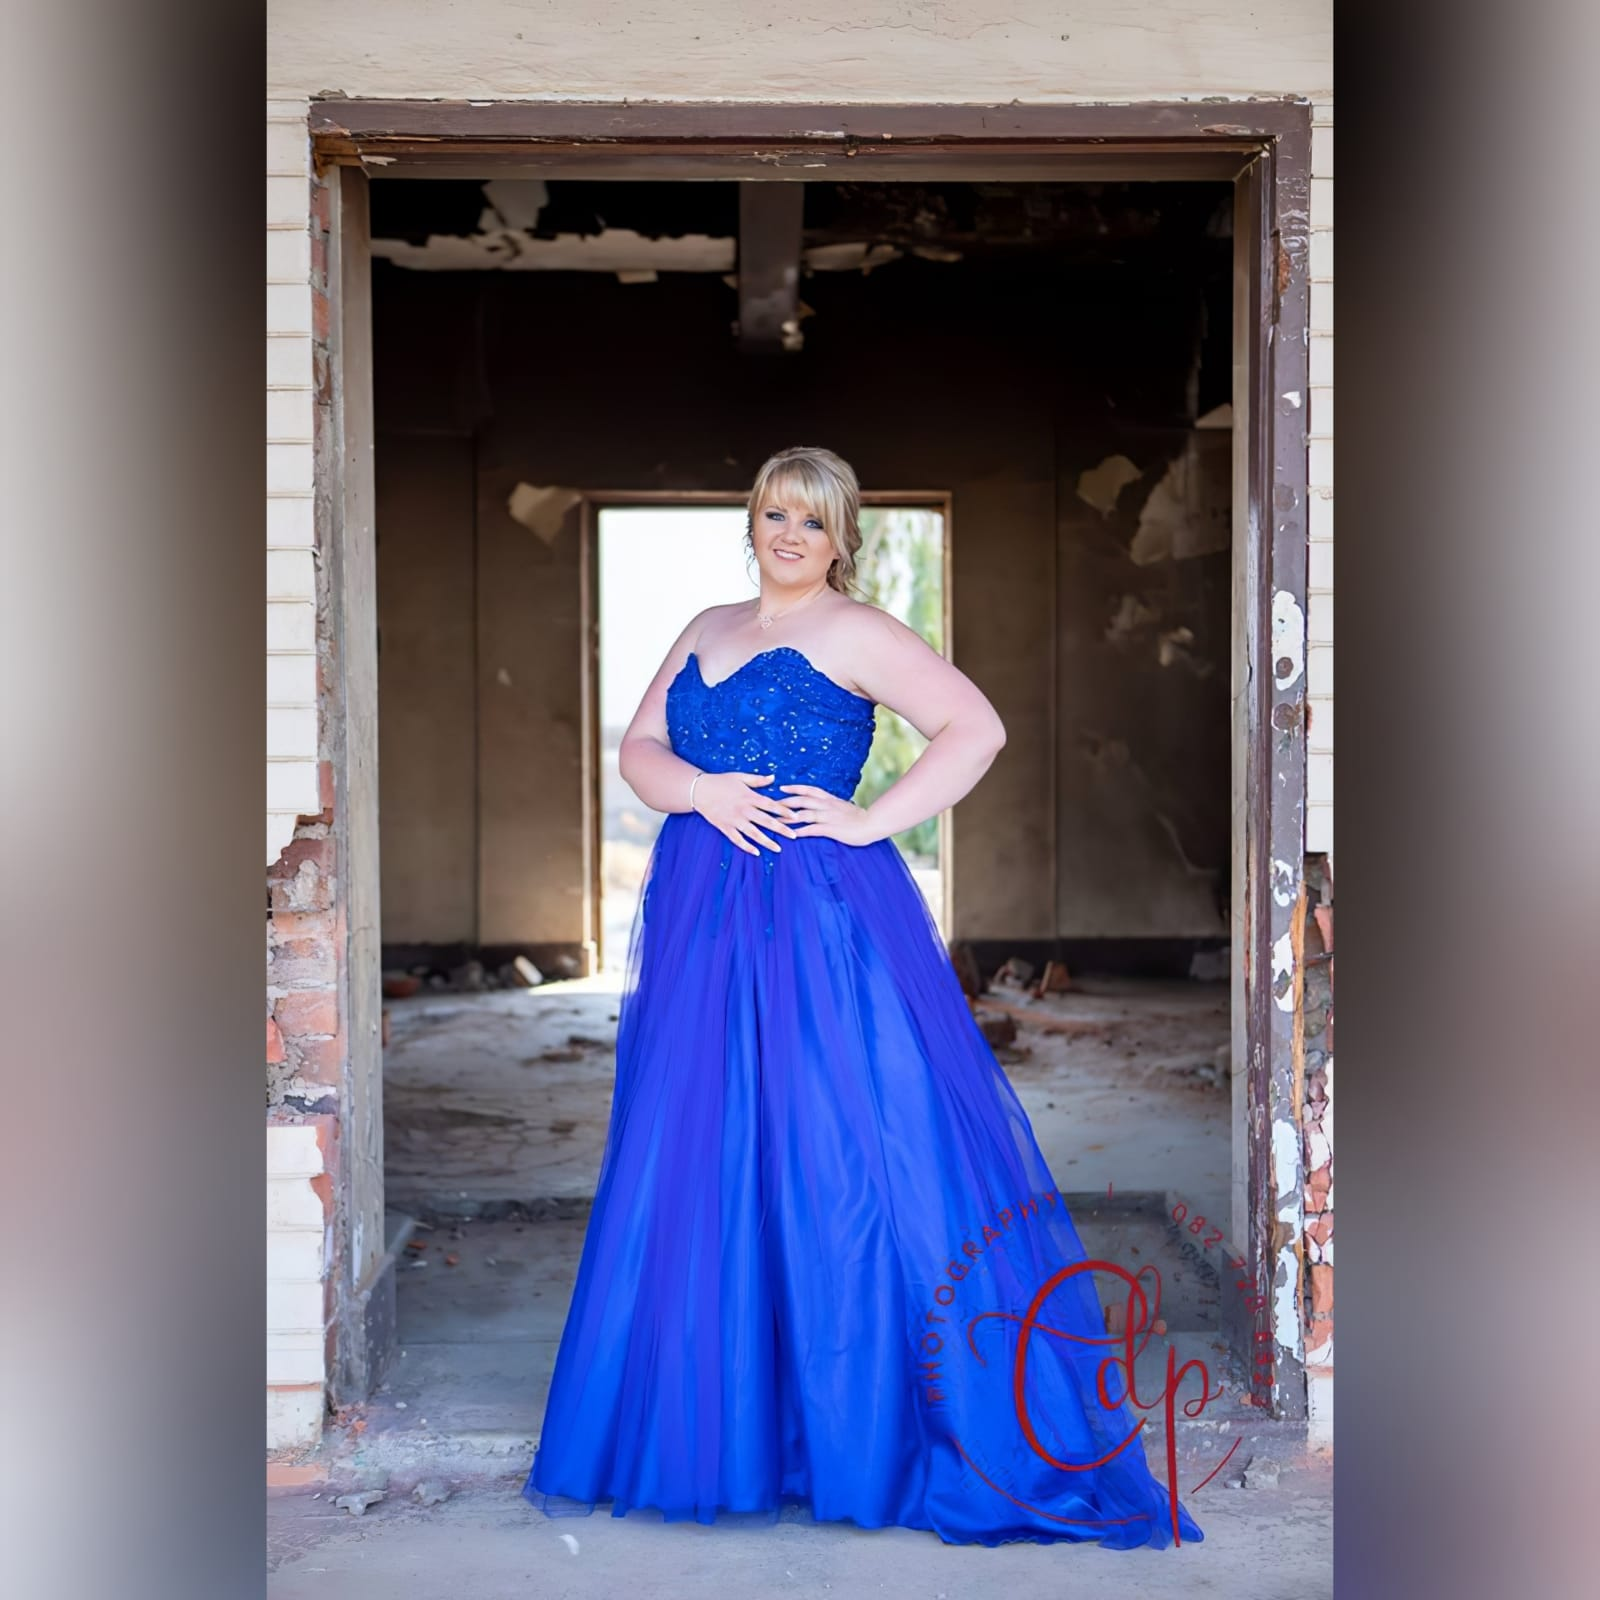 Royal blue boobtube tulle prom dress 1 royal blue boobtube tulle prom dress. Bodice with a sweetheart neckline and detailed with beaded lace falling onto the tulle skirt.